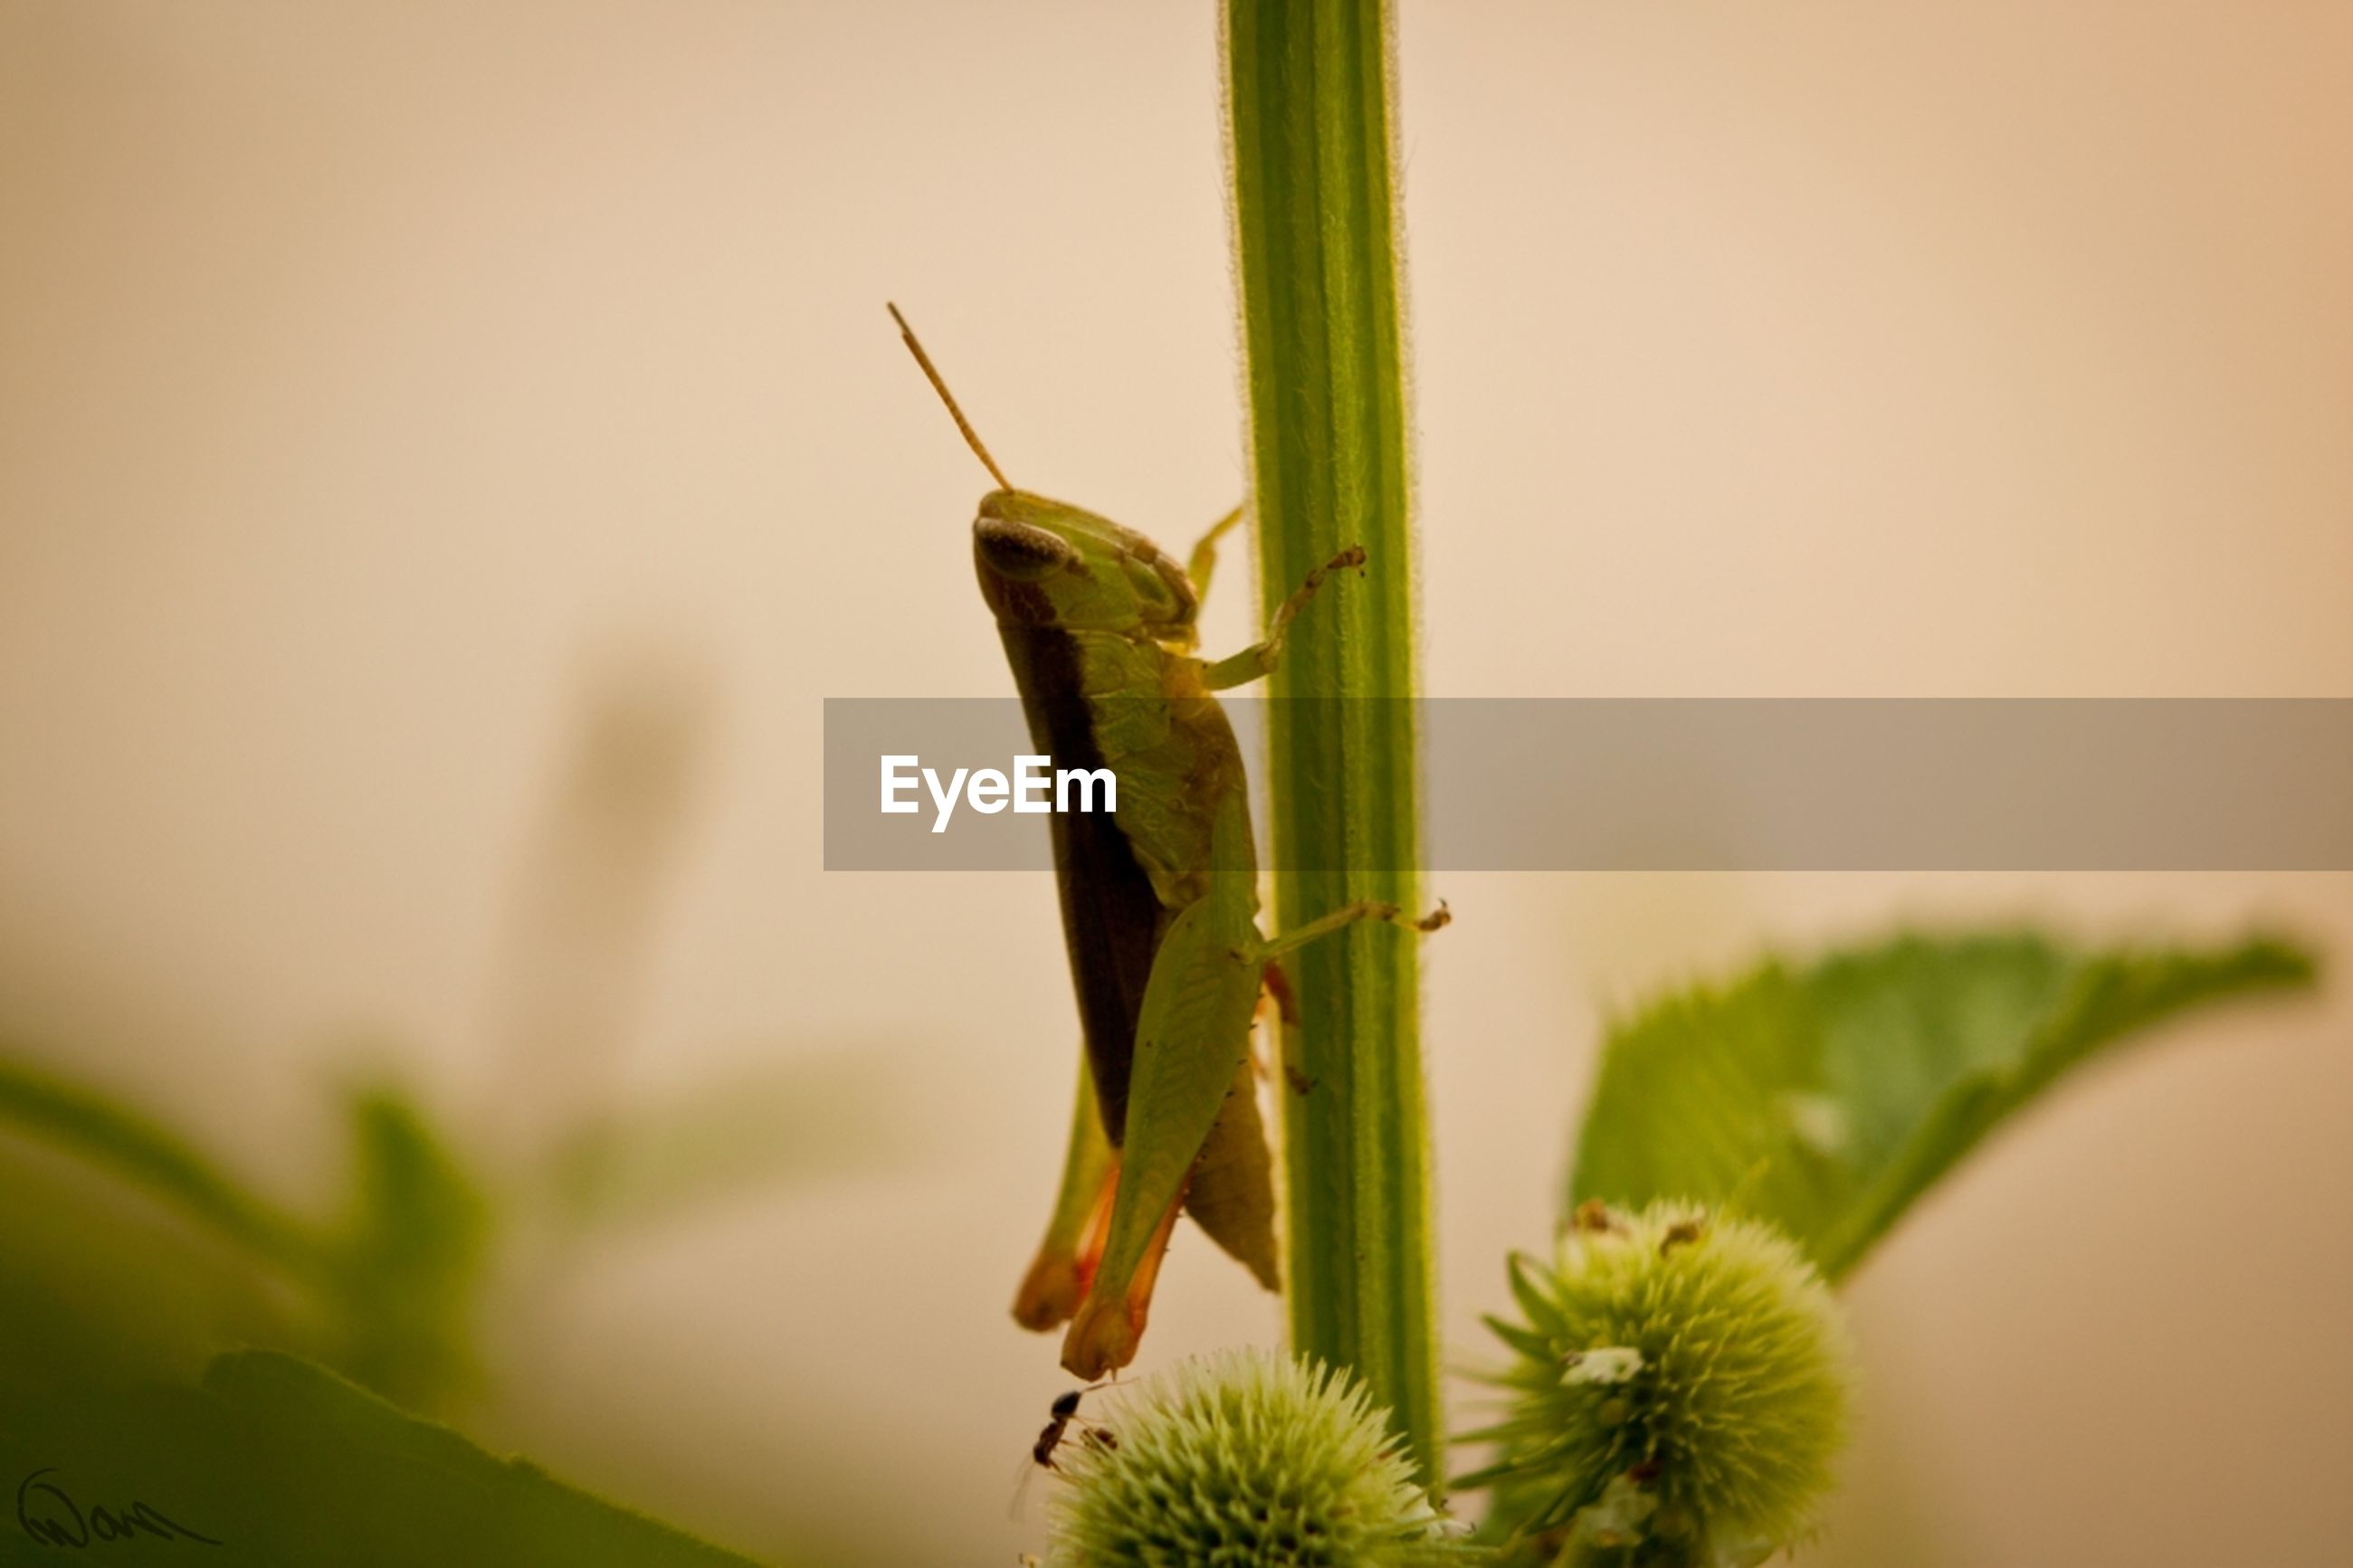 one animal, insect, animals in the wild, animal themes, wildlife, close-up, plant, focus on foreground, green color, grasshopper, selective focus, nature, dragonfly, stem, growth, leaf, day, outdoors, blade of grass, animal antenna